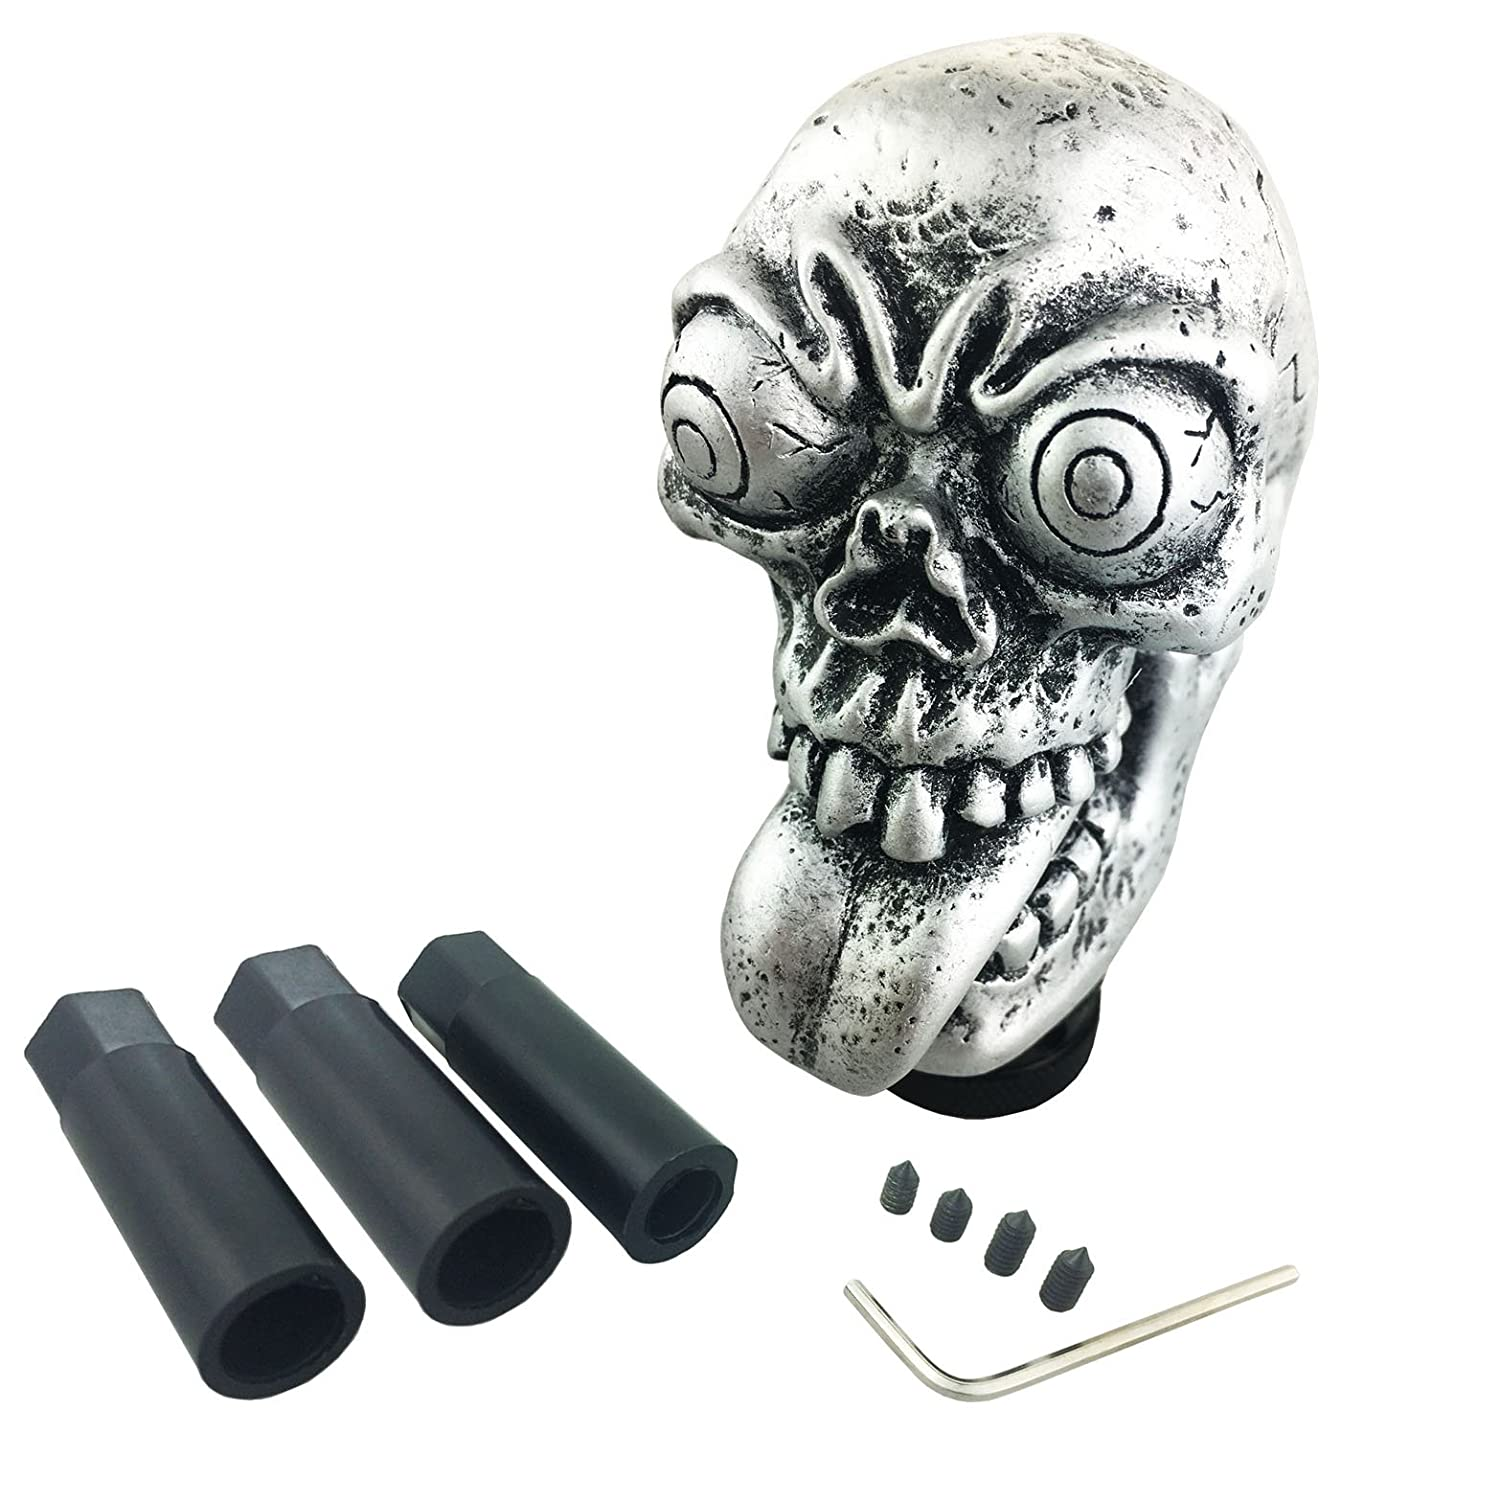 Arenbel New Universal Manual and Automatic Car Gear Stick Shifter Knob Silver Skull Big Eye Shift Lever Fit Most Cars ACN310-BL310B